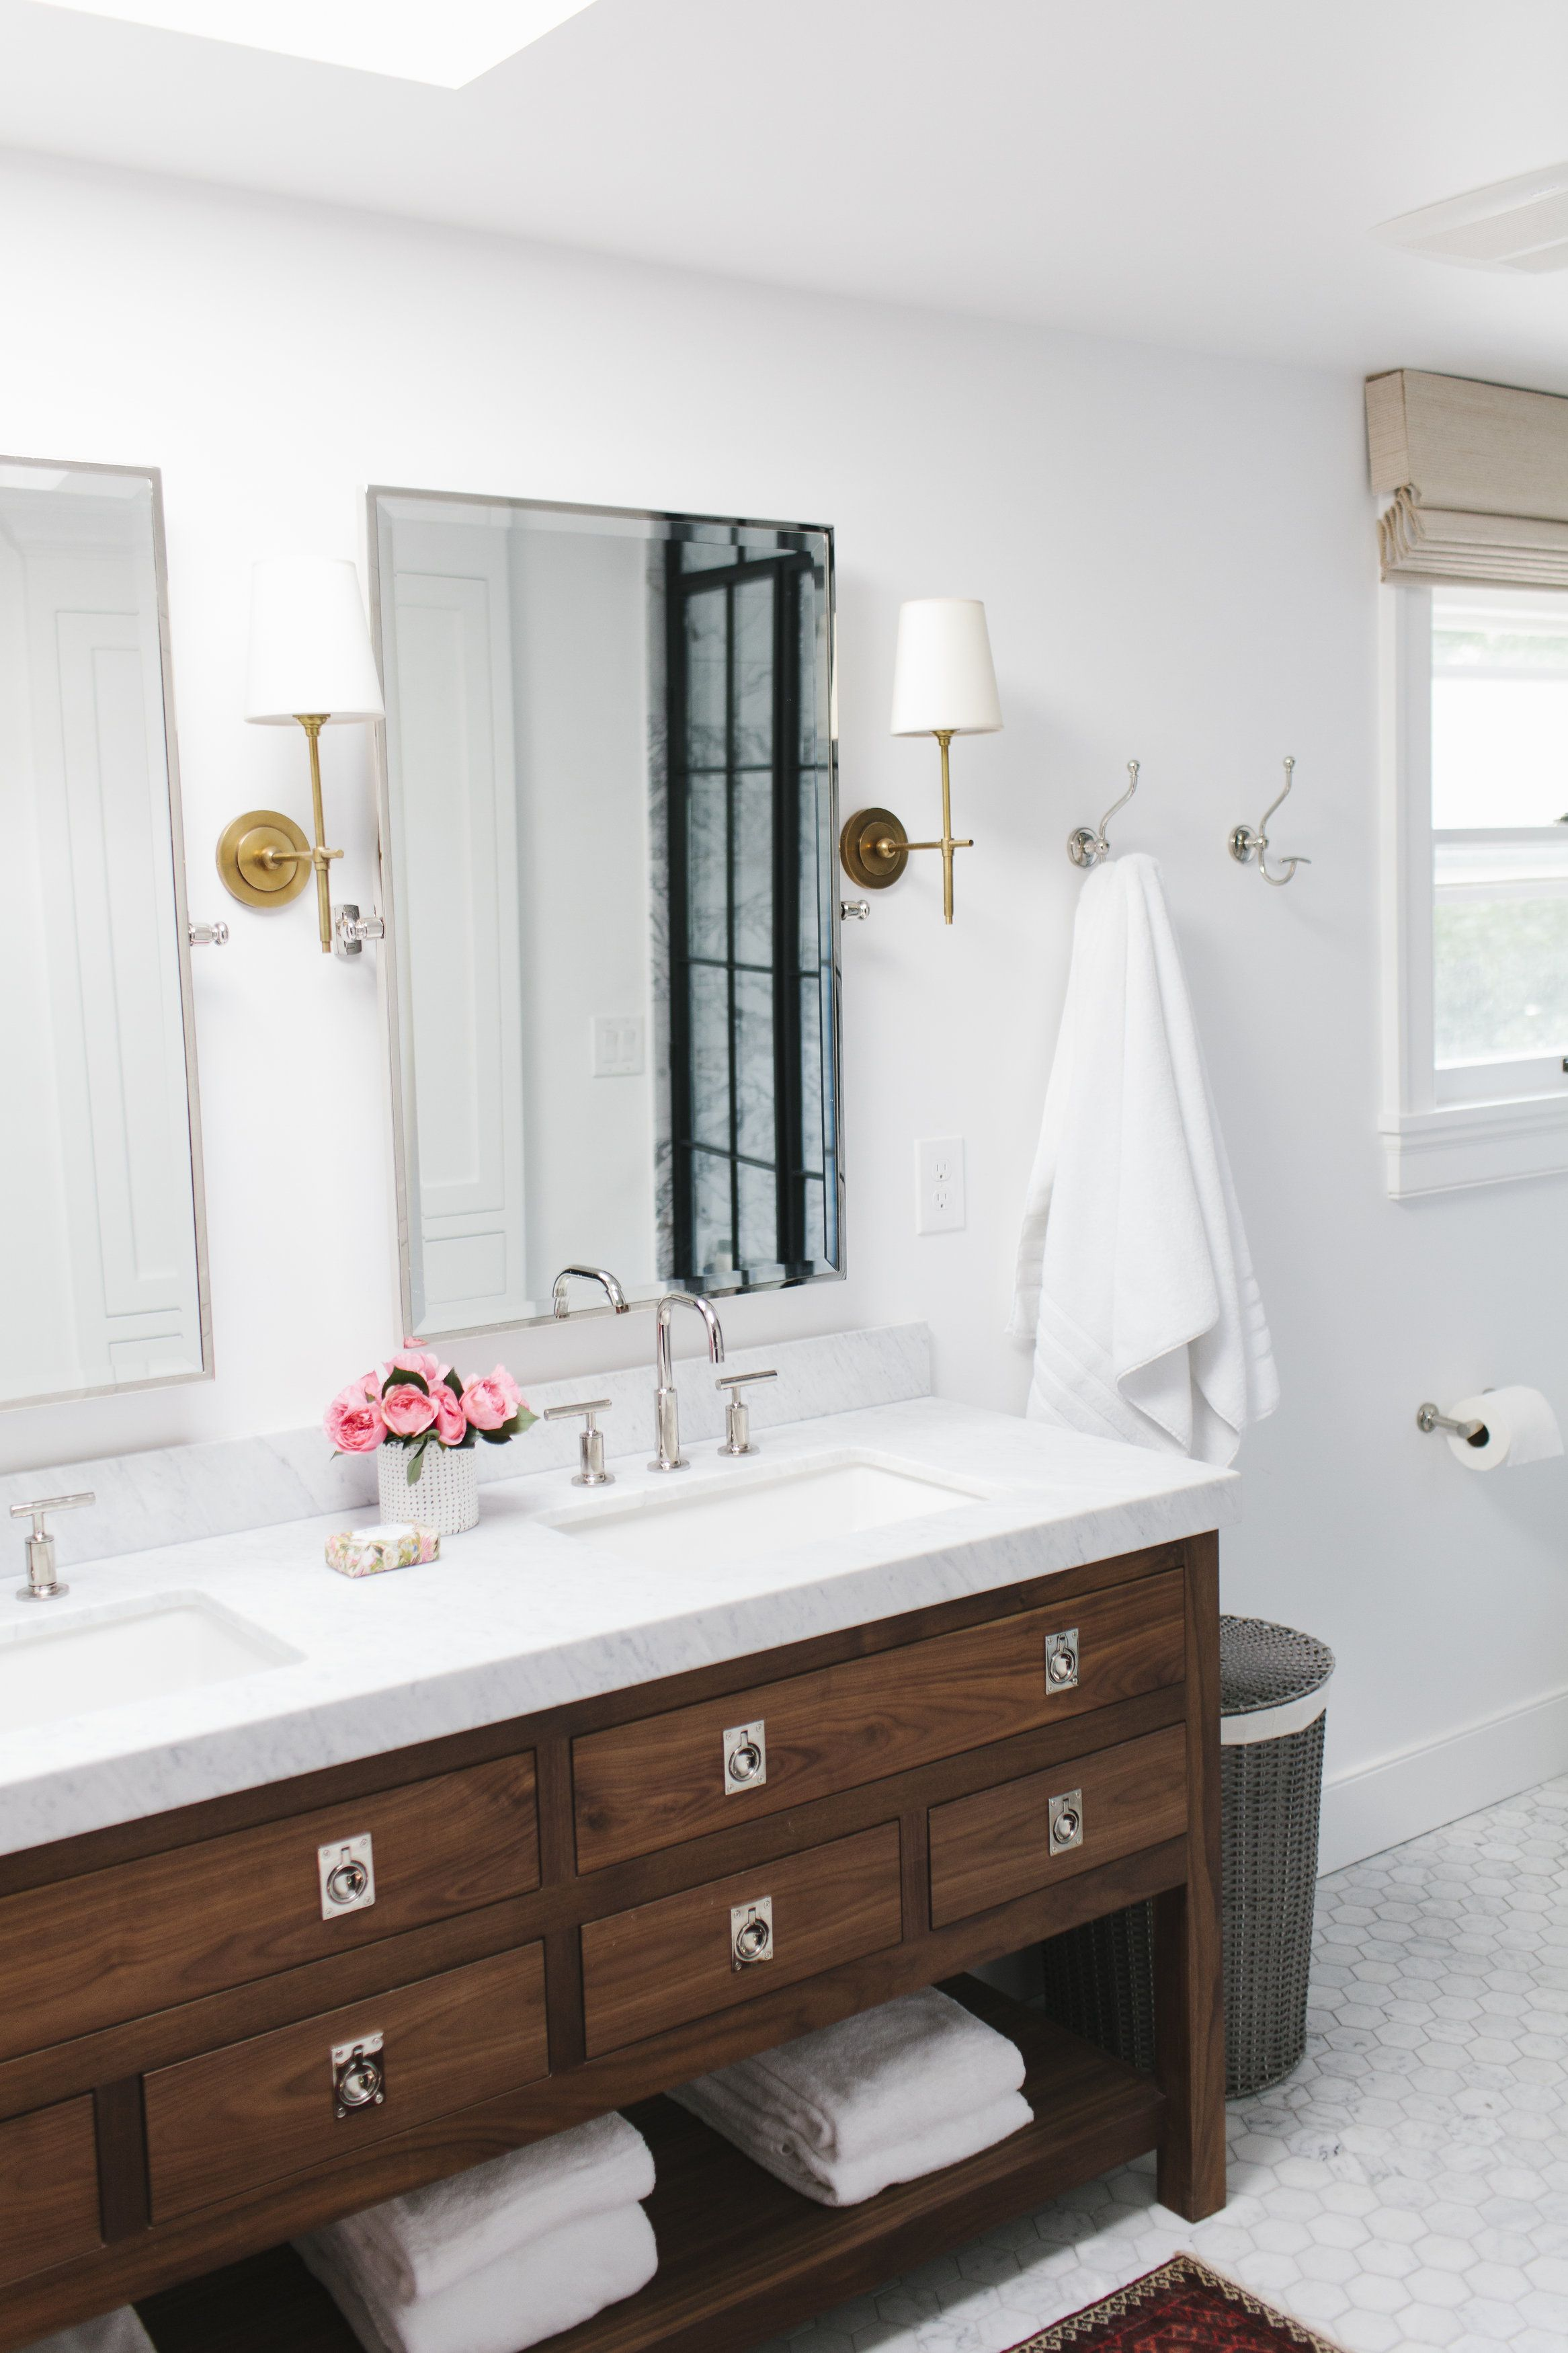 Lynwood Remodel: Master Bedroom and Bath | Studio mcgee, Marbles and ...